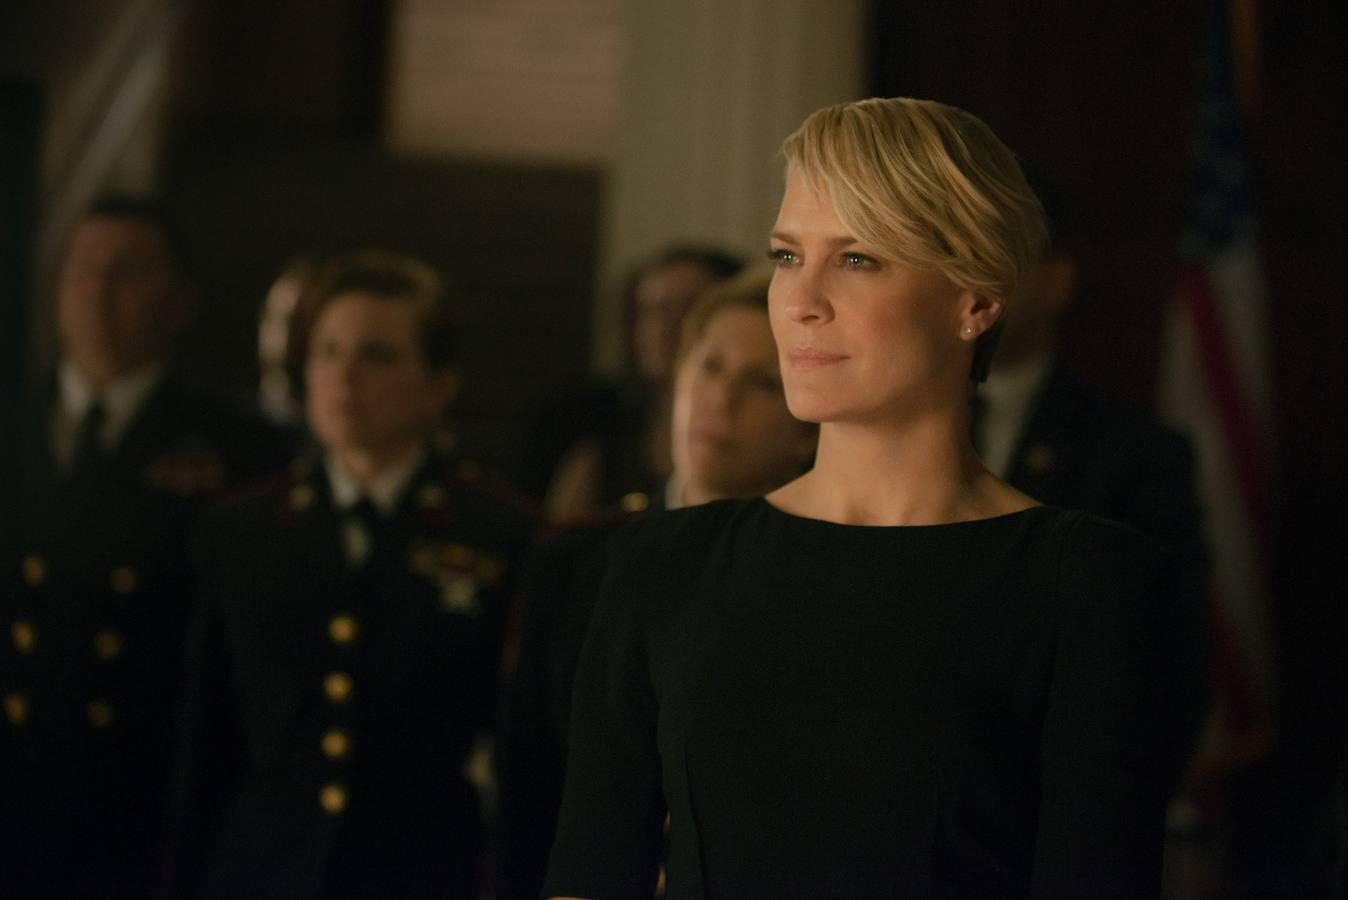 El turno de Claire Underwood... y de Robin Wright